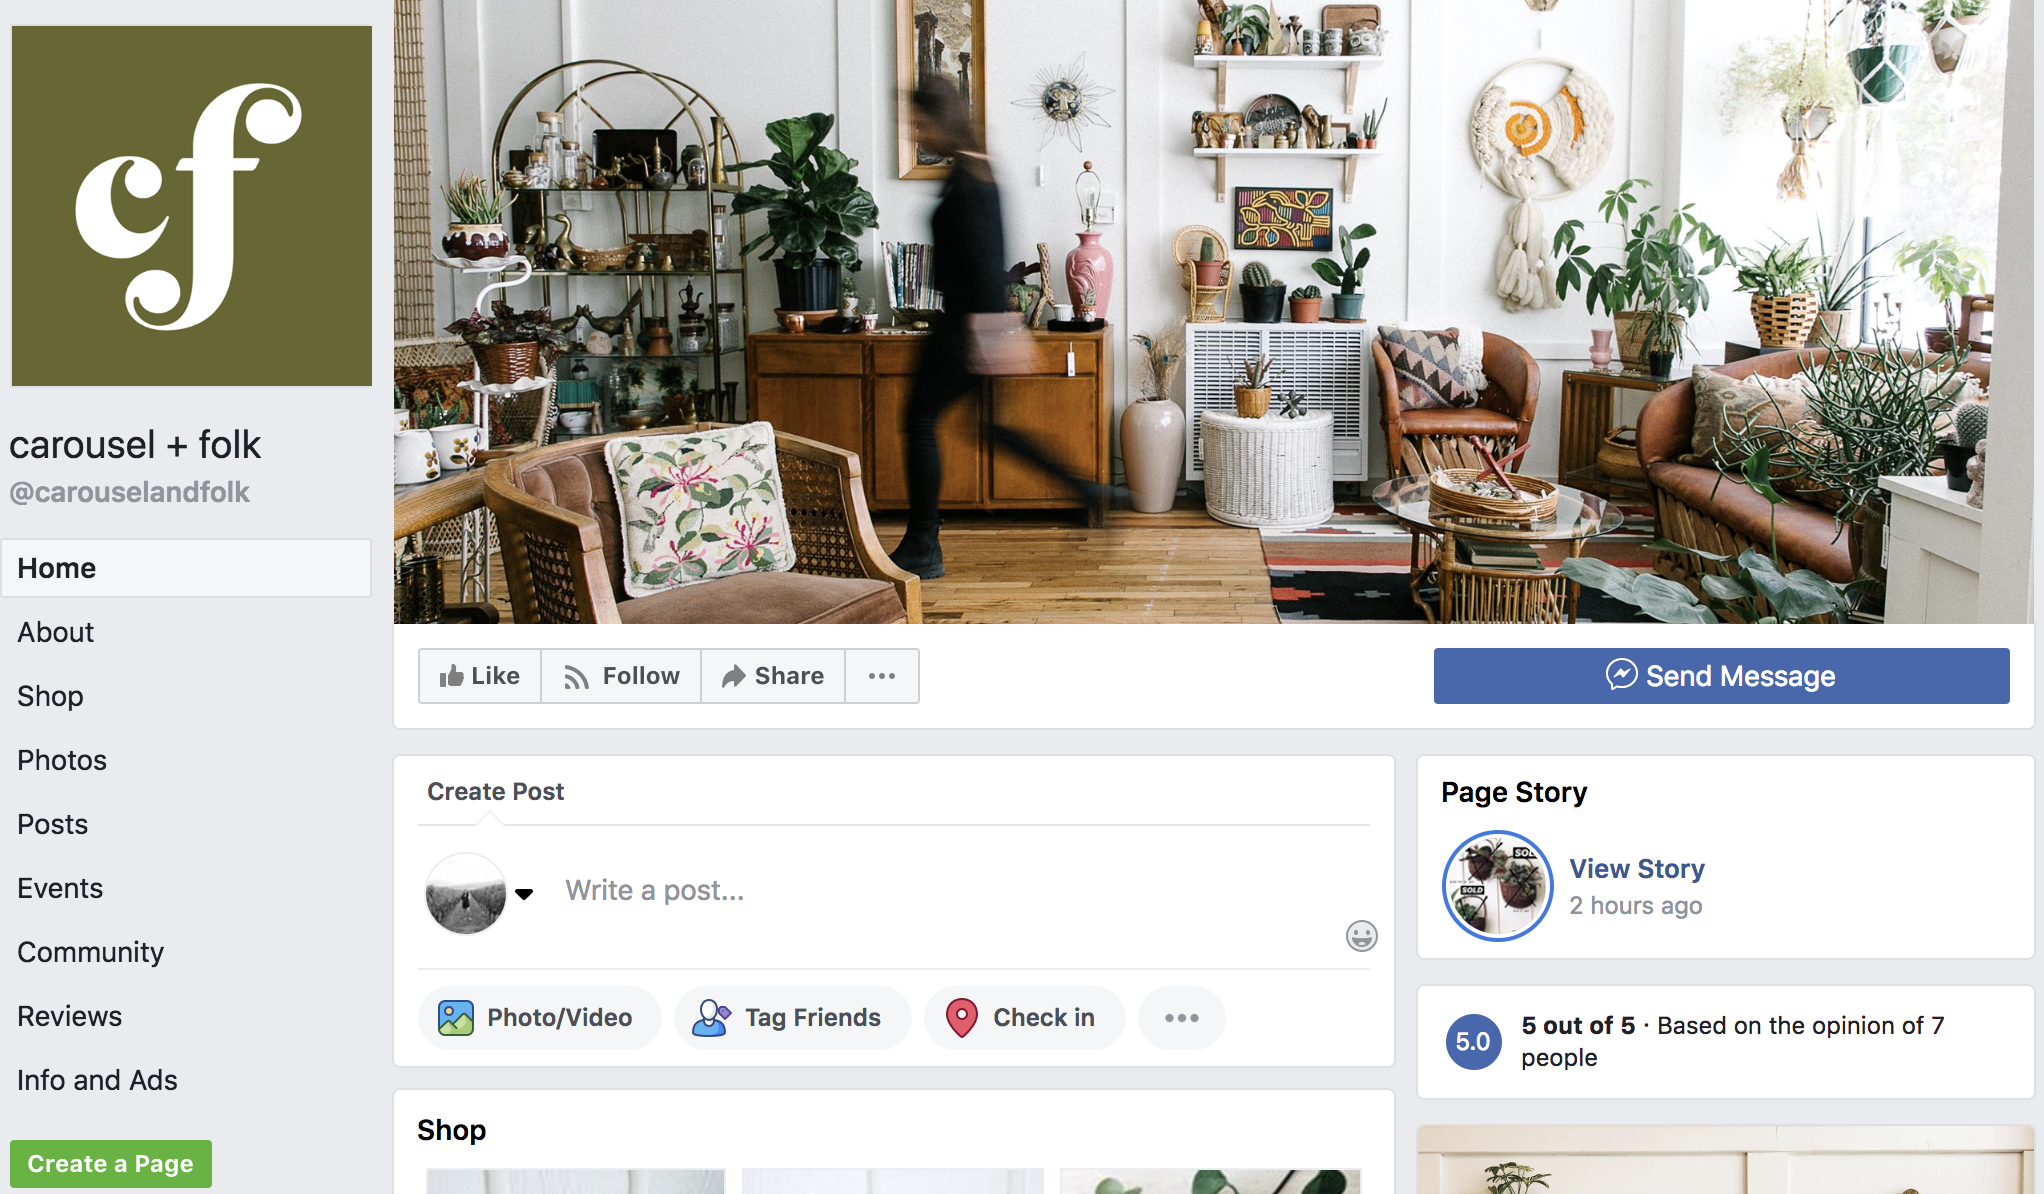 FB Banner was the same as the website - giving it a cohesive and recognizable look across platforms